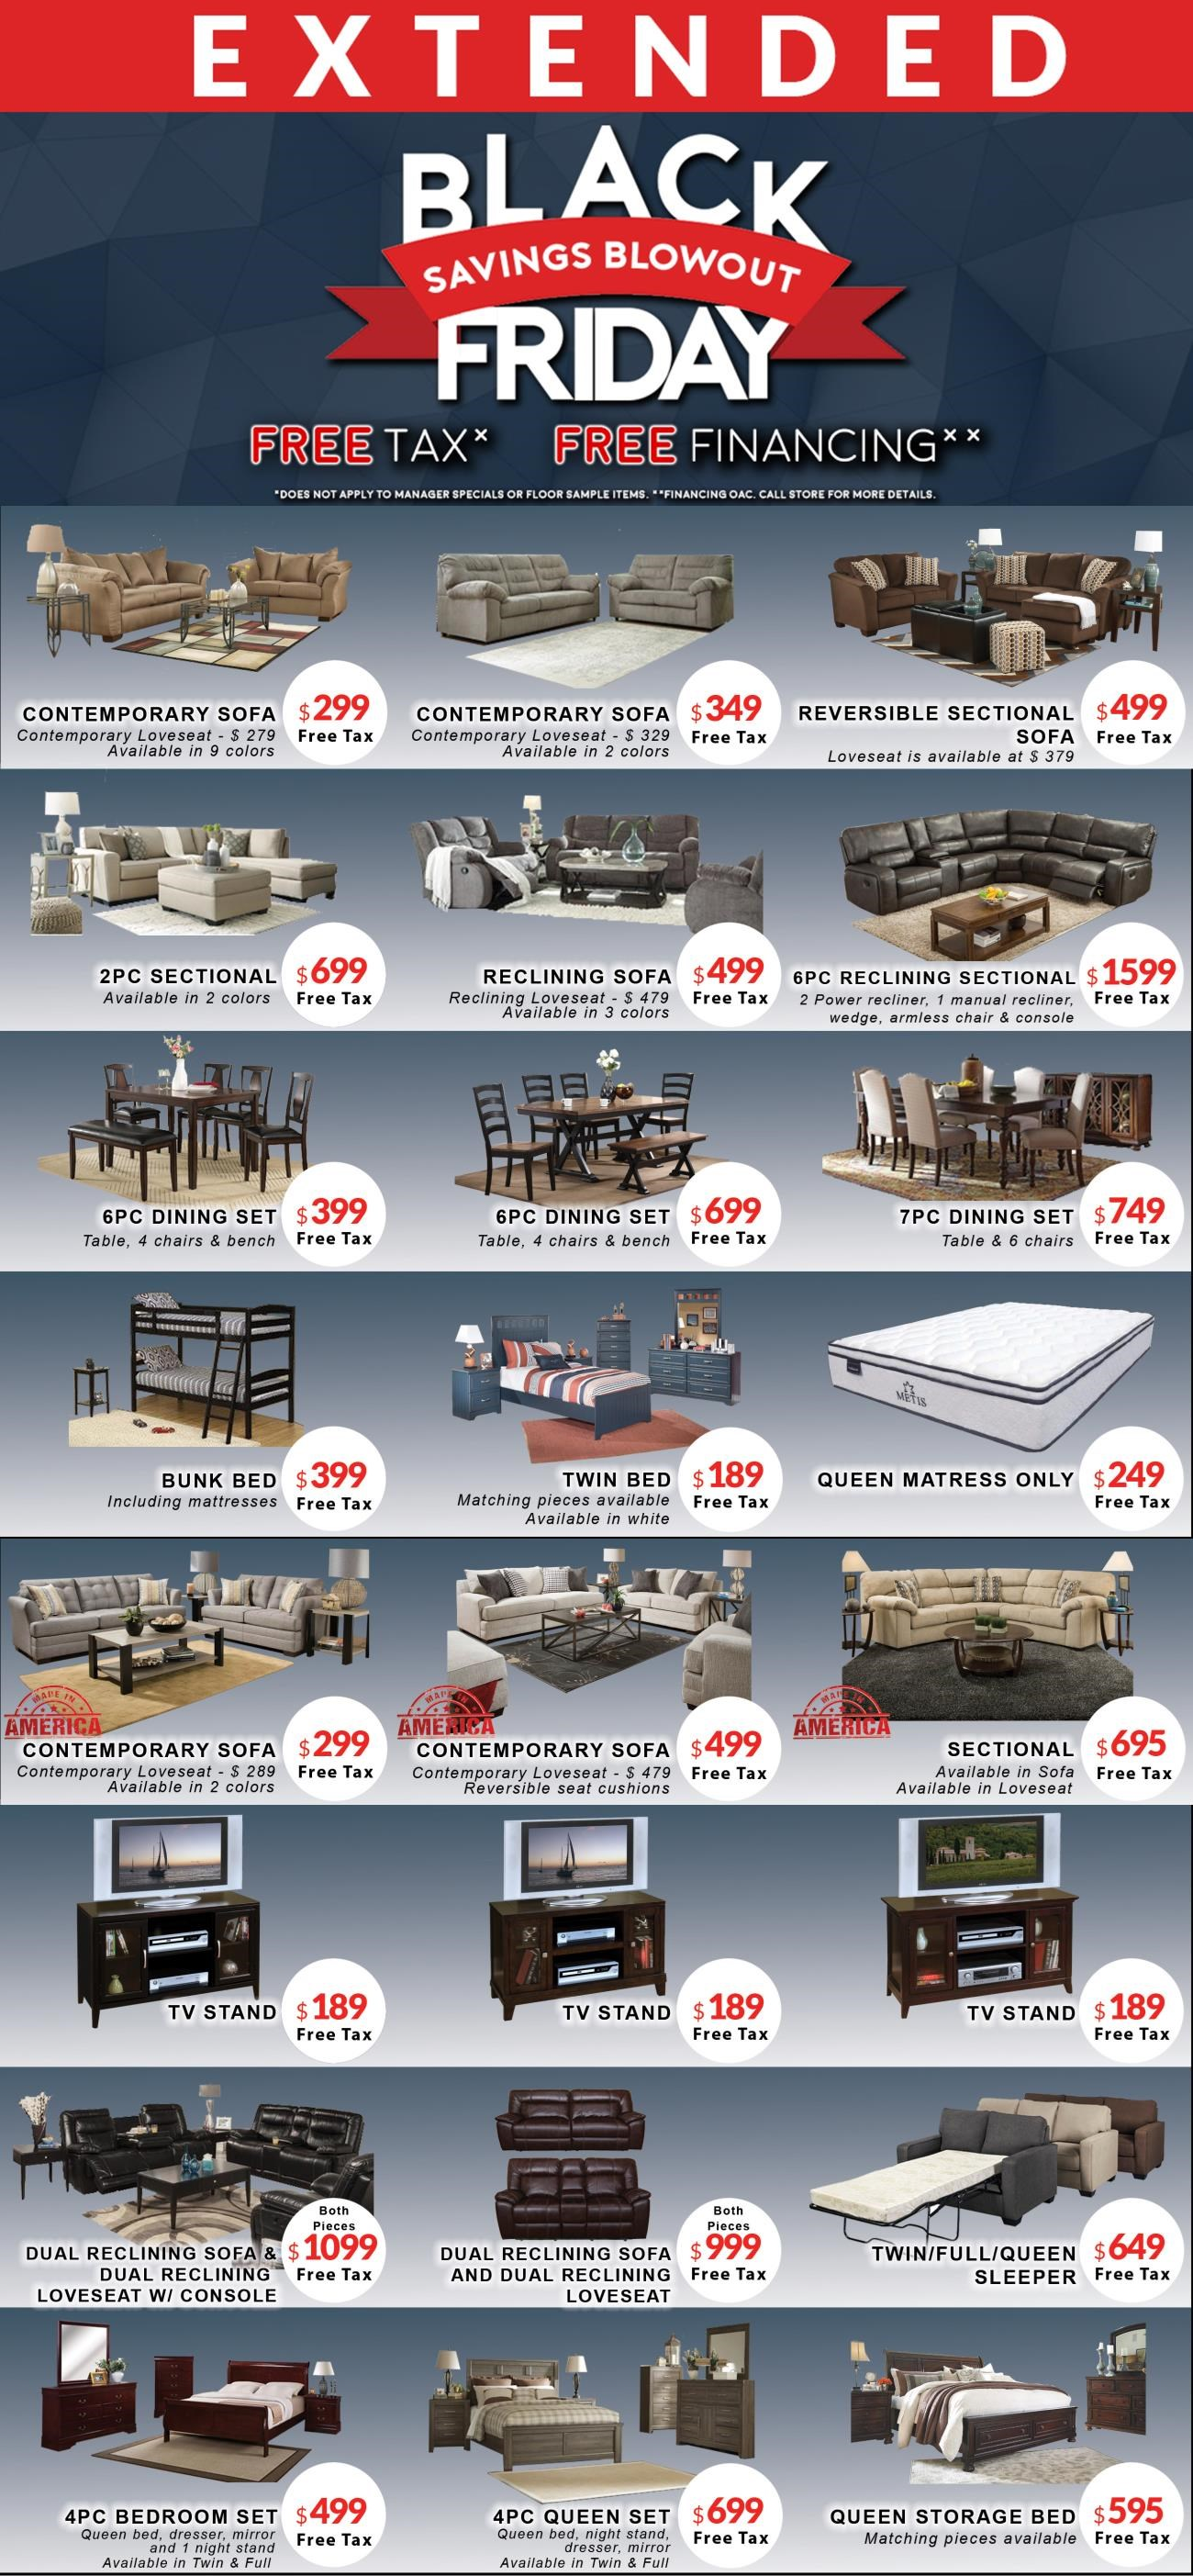 Current Promotions At Michaelu0027s Furniture Warehouse: